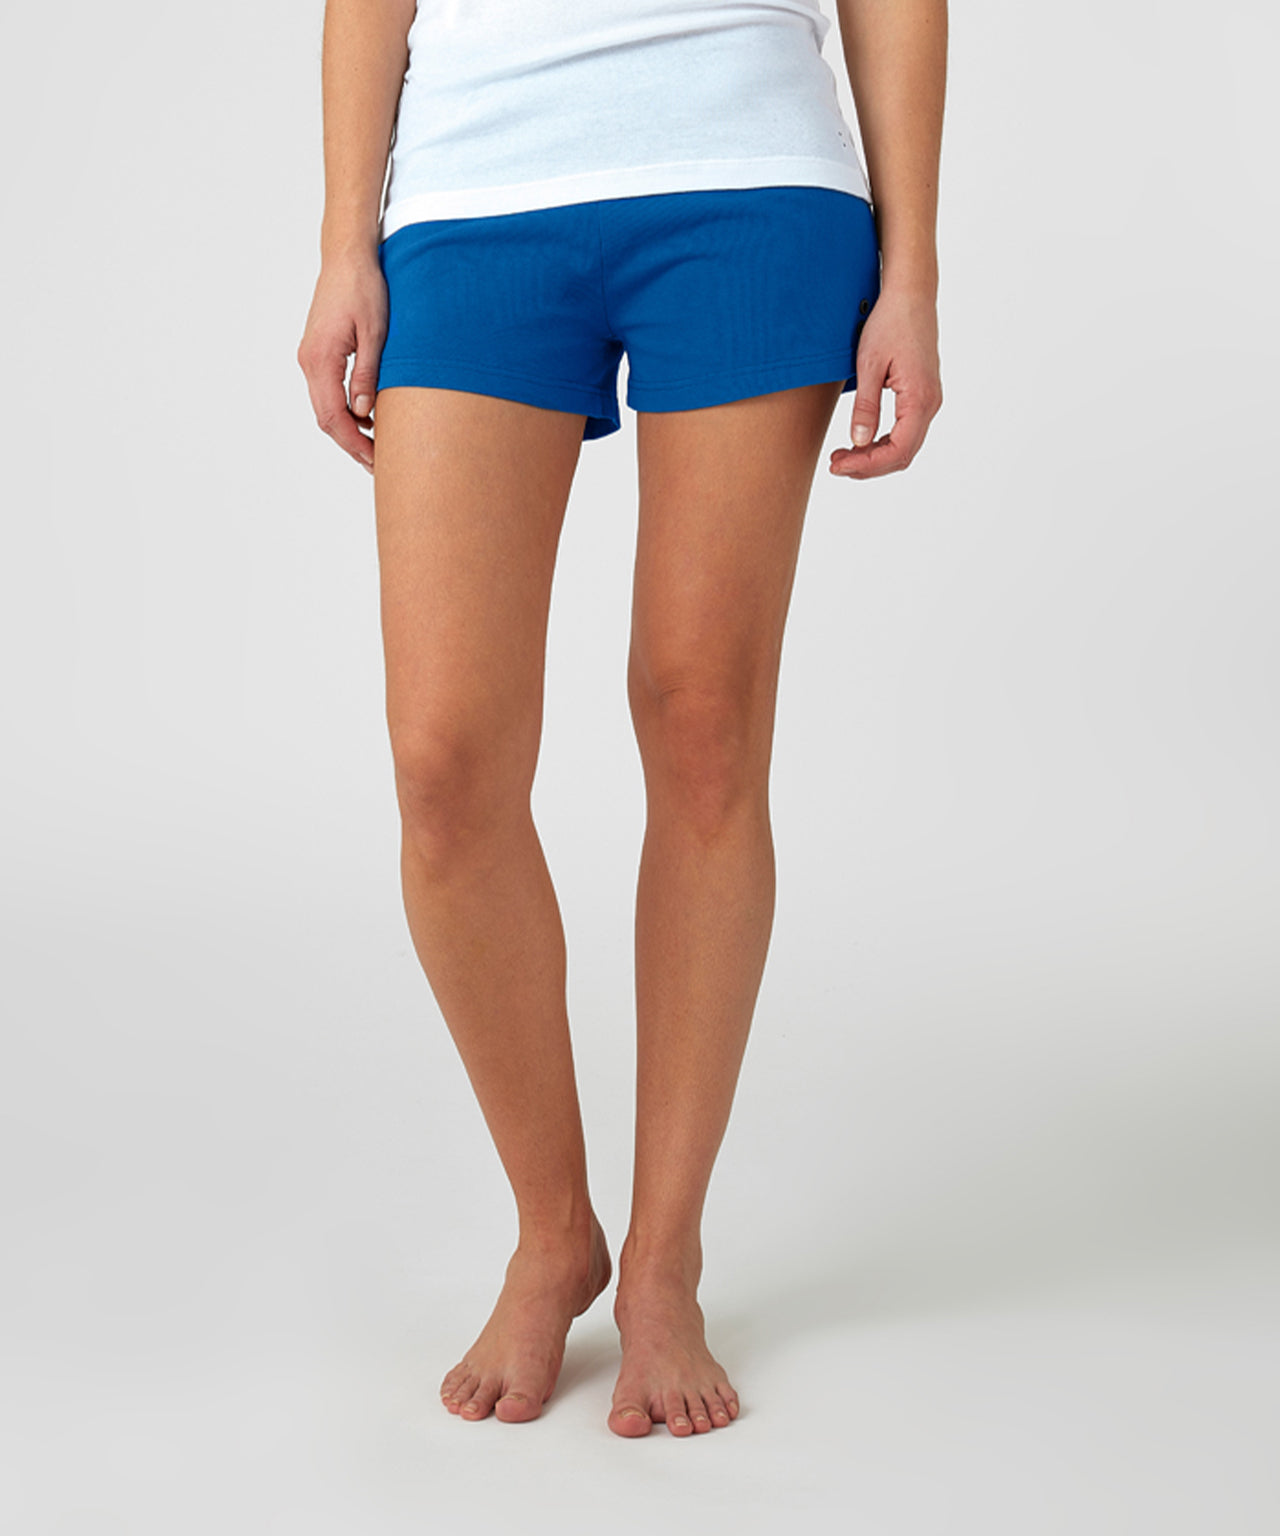 Home Shorts His For Her - electric blue